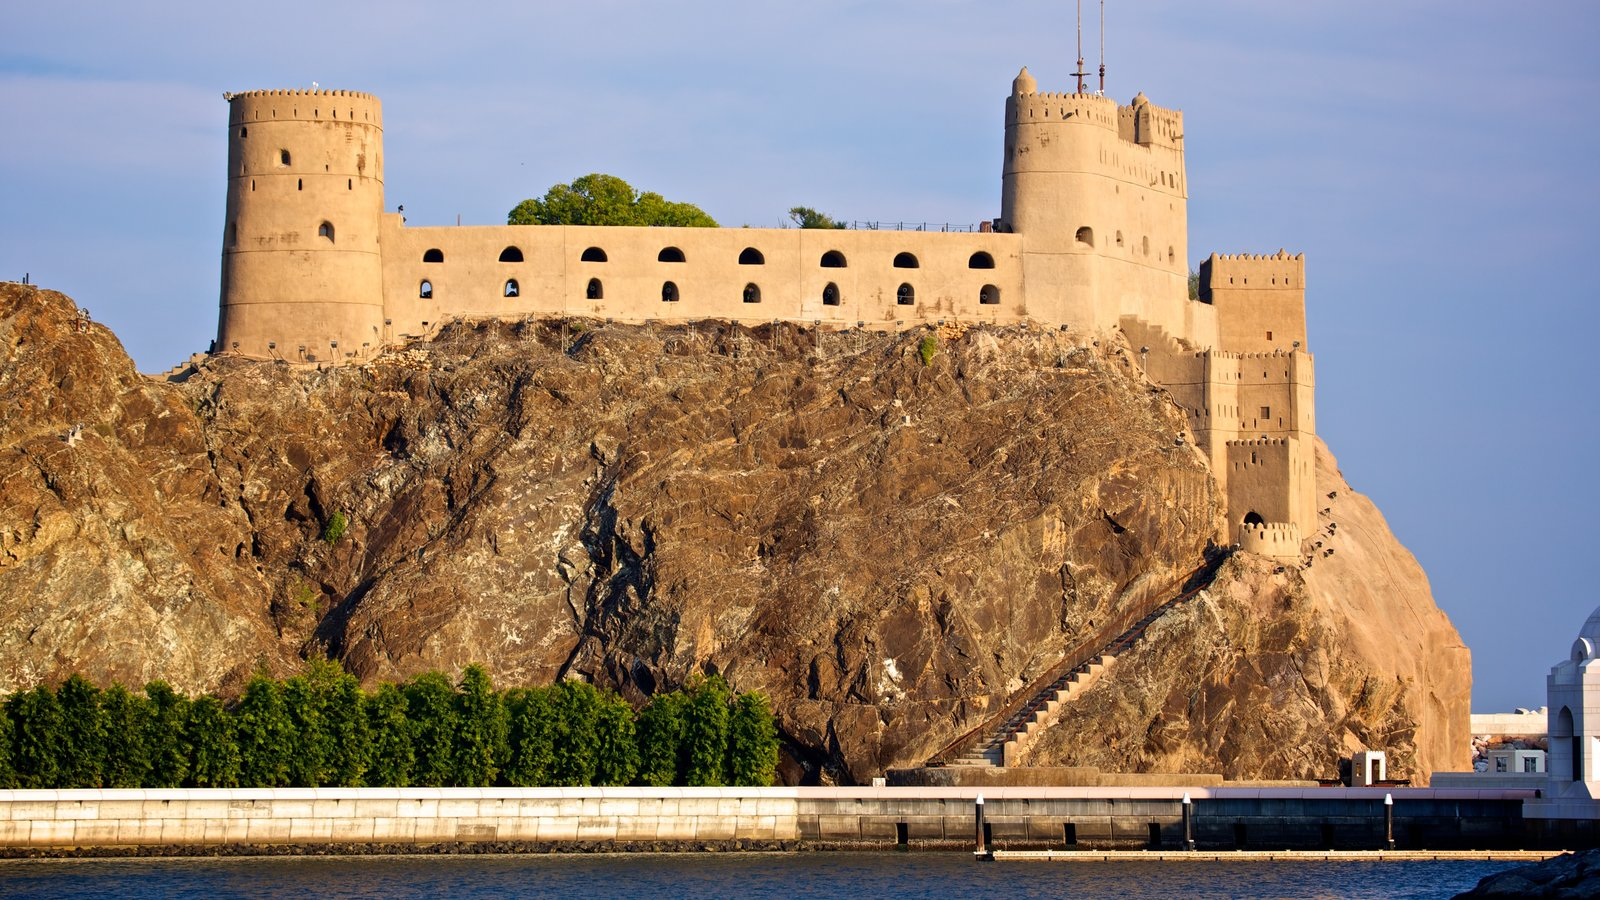 Oman which includes a castle, heritage elements and heritage architecture